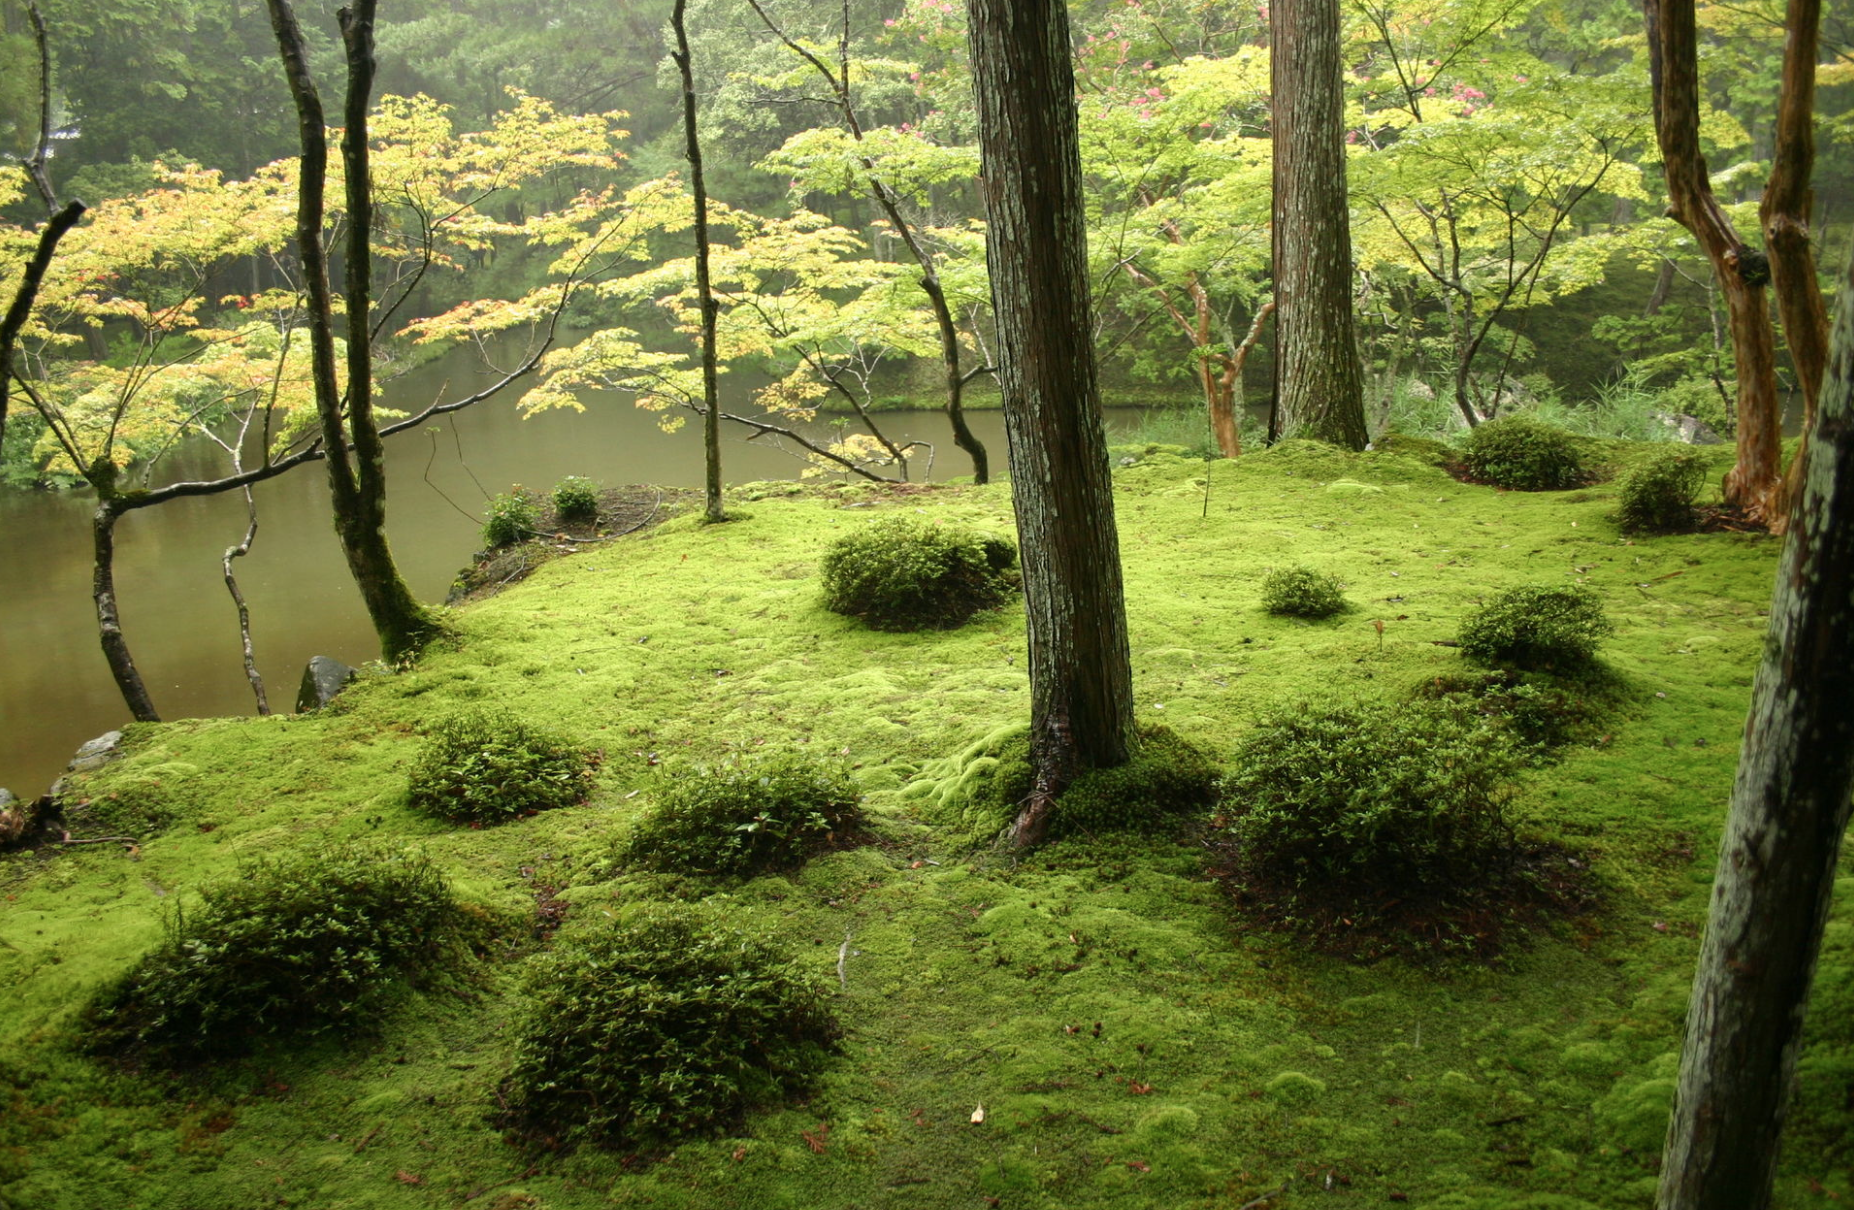 Saihō-ji  , or the Moss Garden, an early zen garden from the mid-14h century. The moss arrived much later, when the garden was not tended.